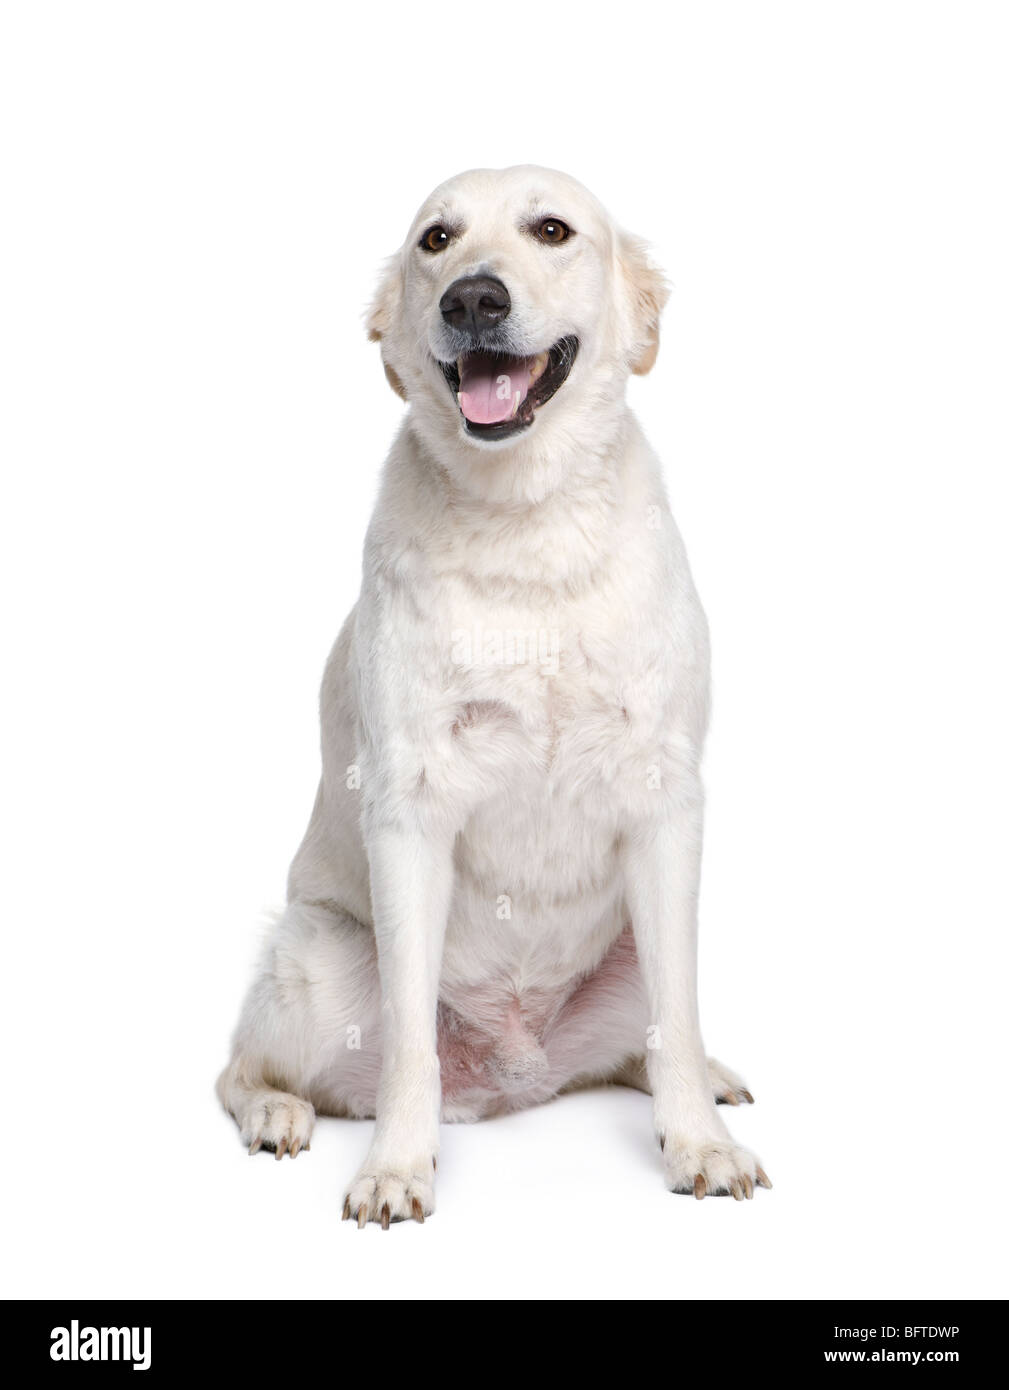 Mixed breed dog between Golden Retriever and Husky, 6 years old, in front of white background - Stock Image